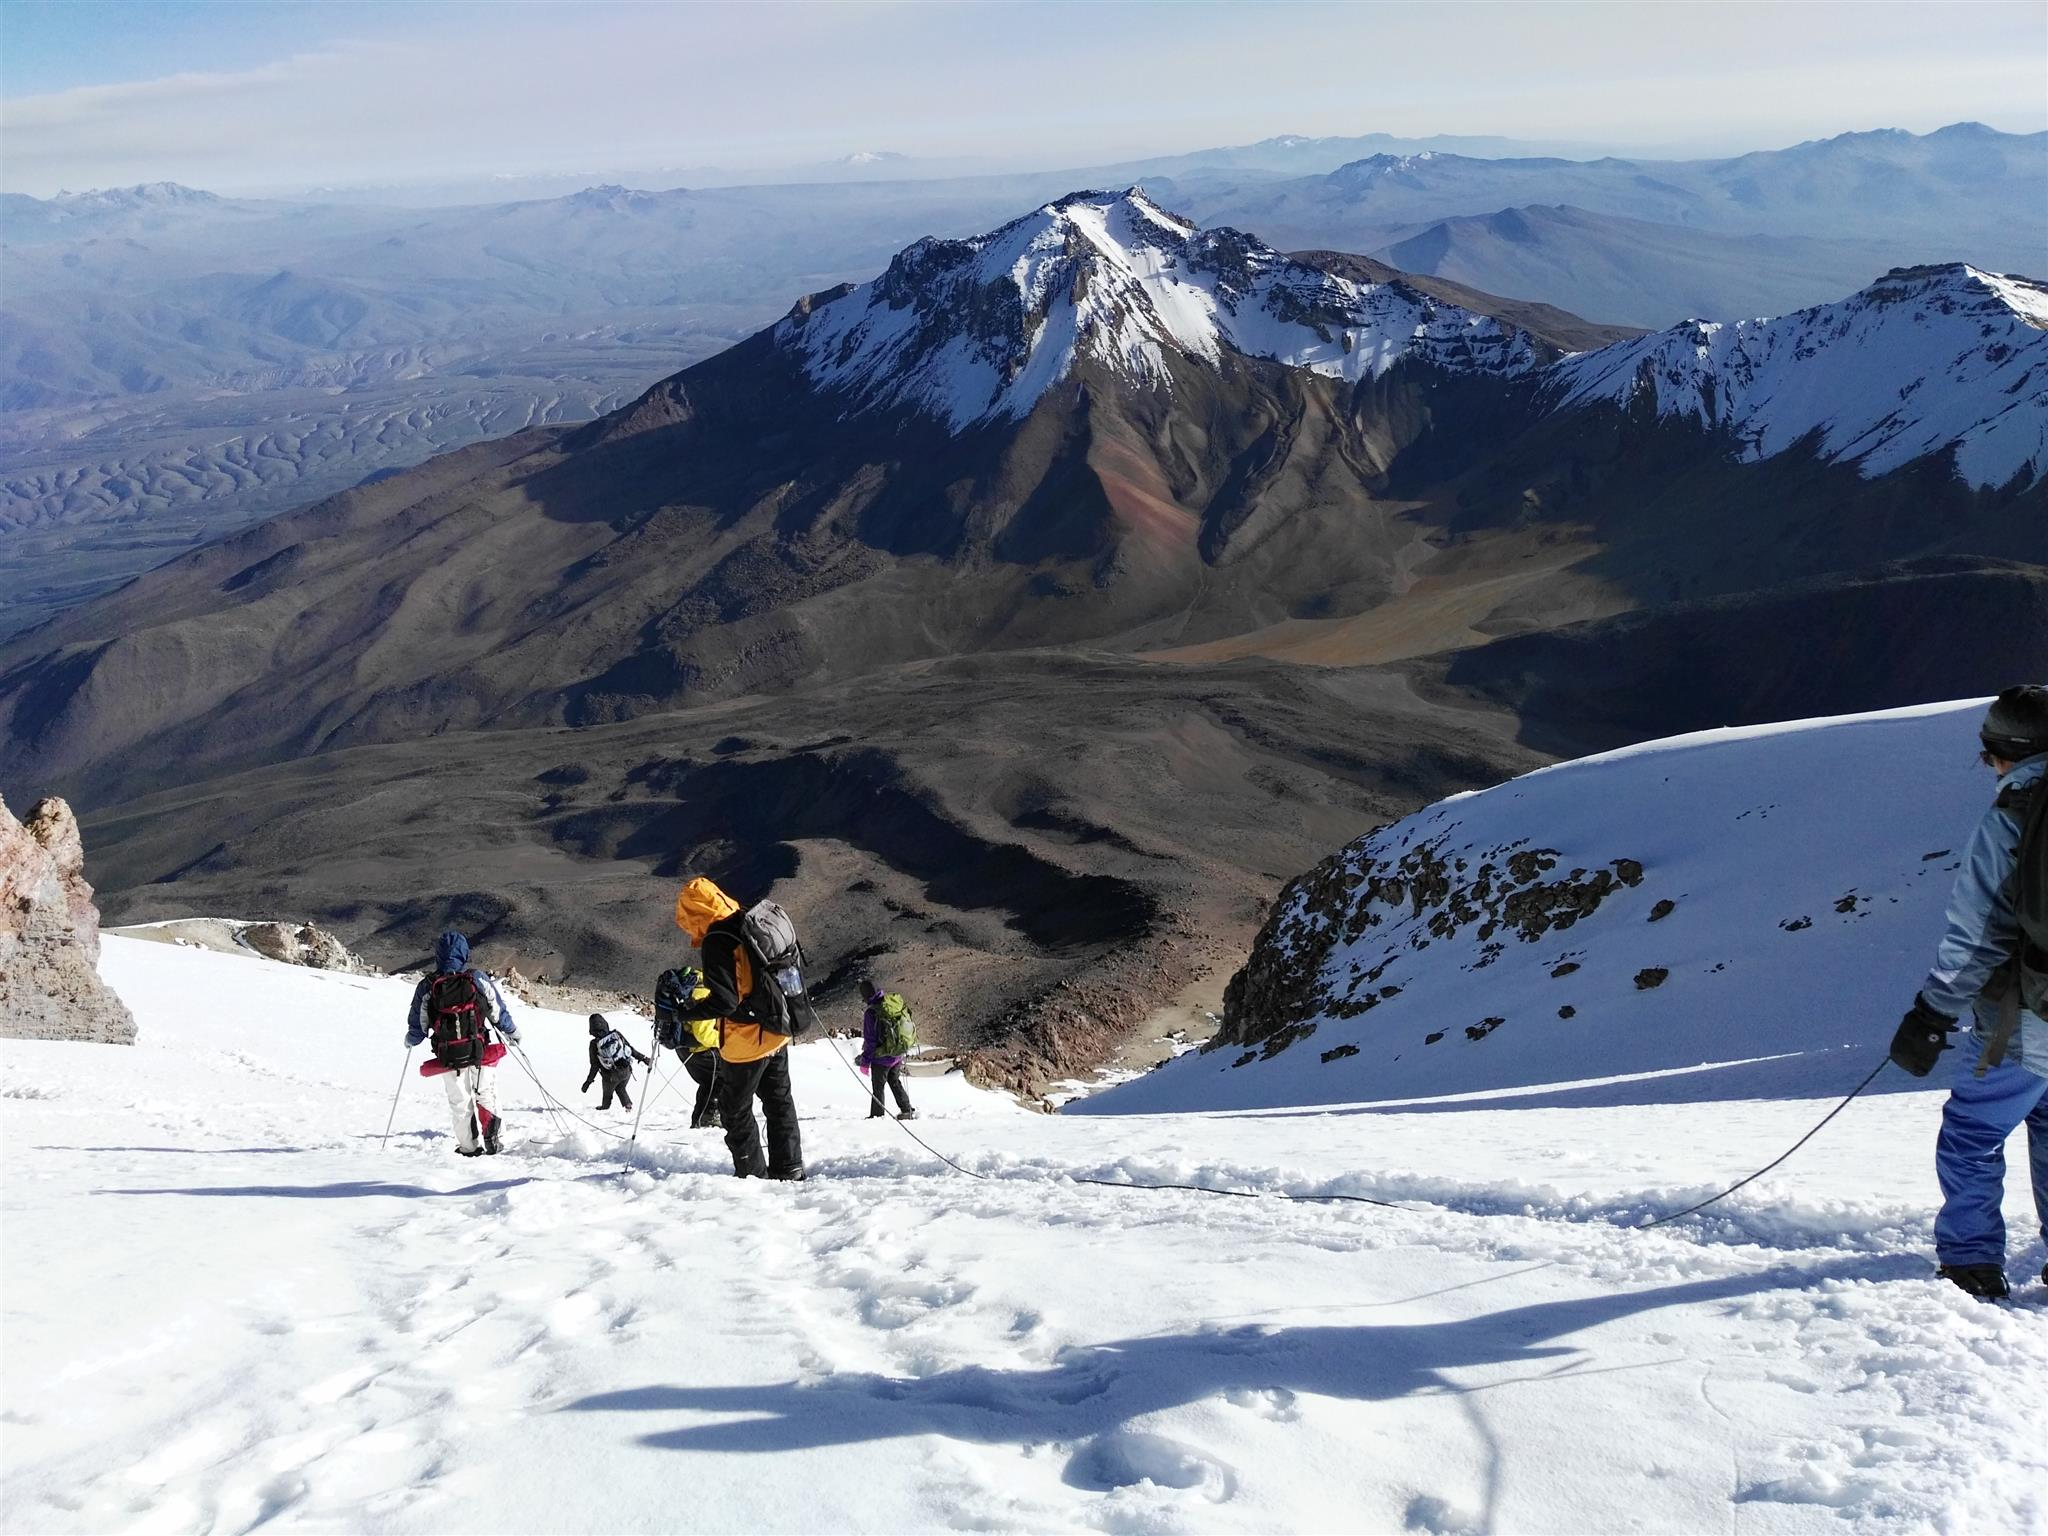 summiting the chachani volcano